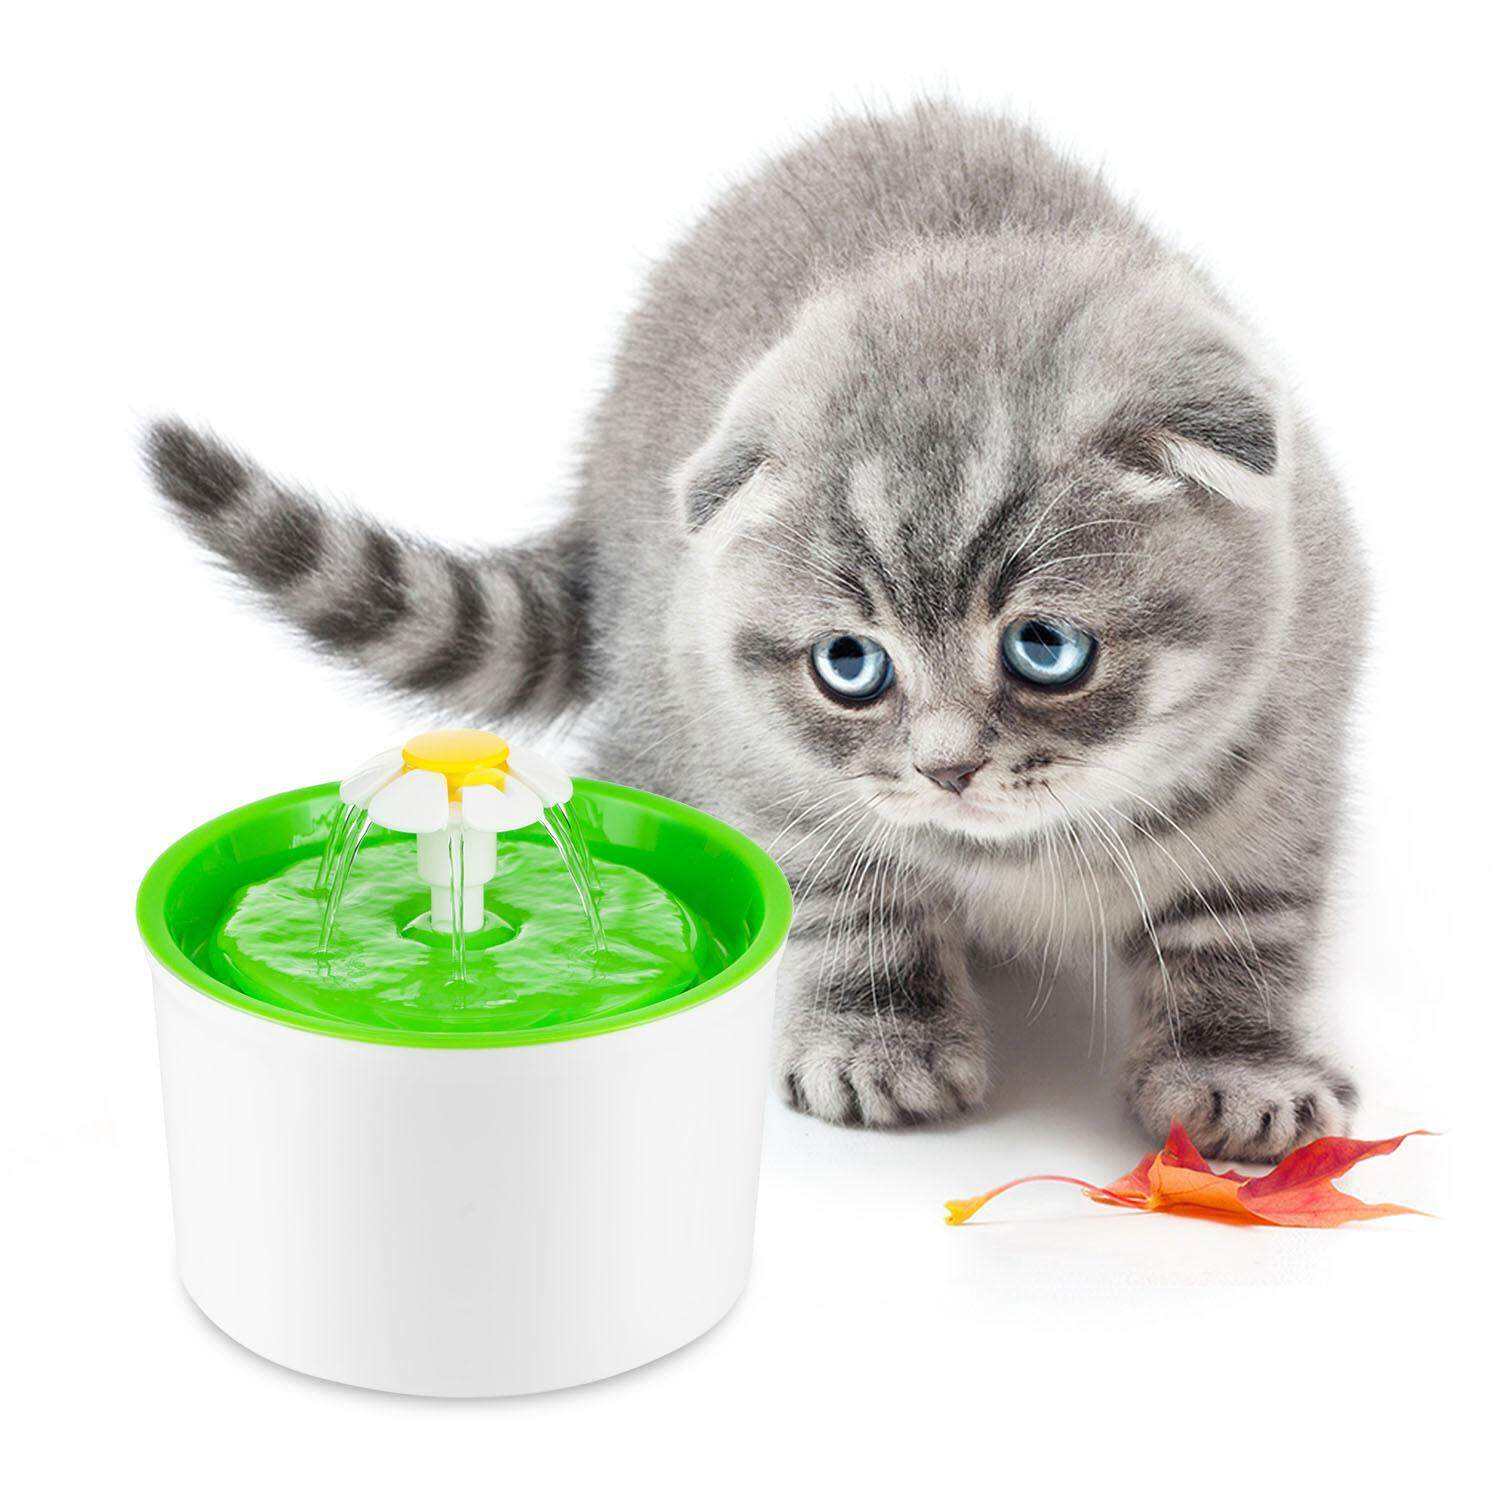 Niceeshop (uk Plug)pet Drinking Fountains,cat Water Fountain Automatic Dog Water Dispenser Super Quiet Water Bowl With Filter,54 Oz Capacity Healthy And Hygienic Drinking Whisper-Quiet Water Pumb For Puppy Kitten By Nicee Shop.